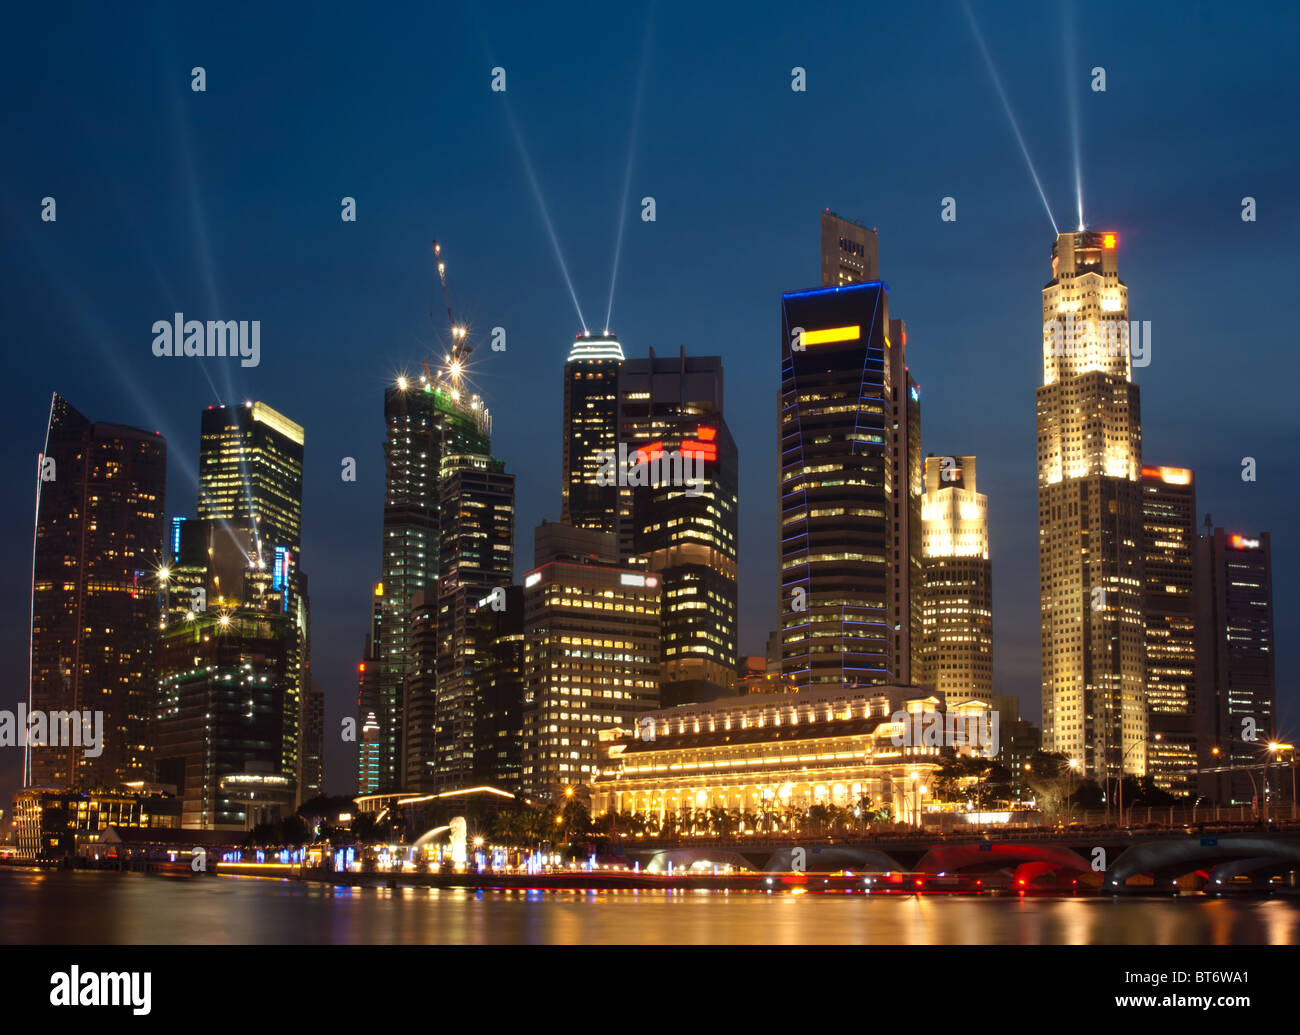 Singapore skyline at night, seen from the Esplanade Stock Photo